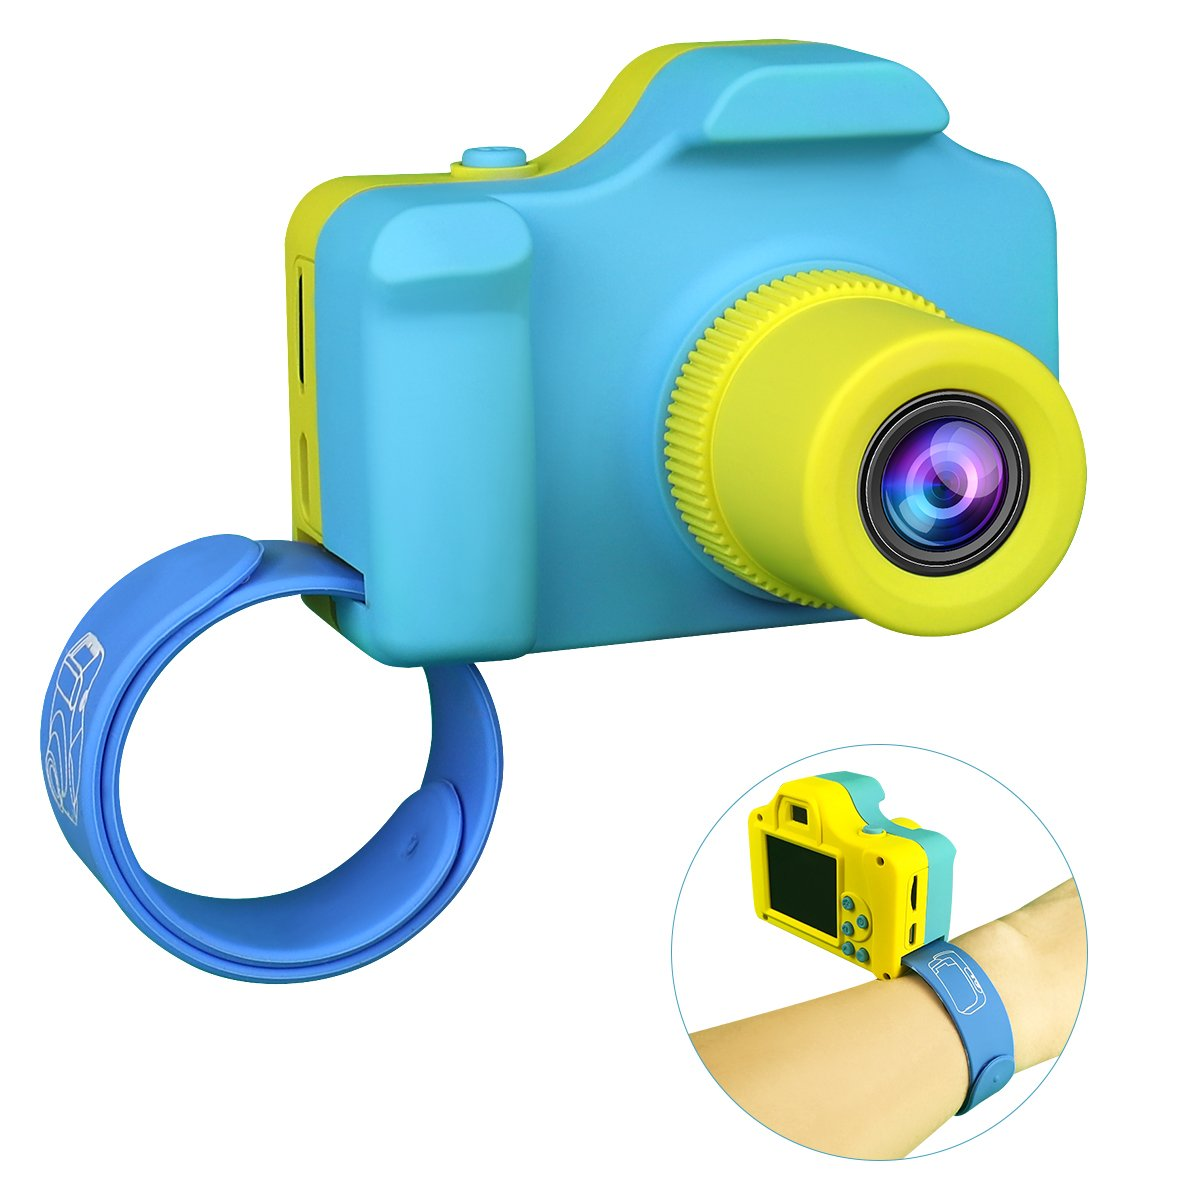 Kids Childrens Digital Video Camera, Point and Shoot Digital Camera for Kids Childrens